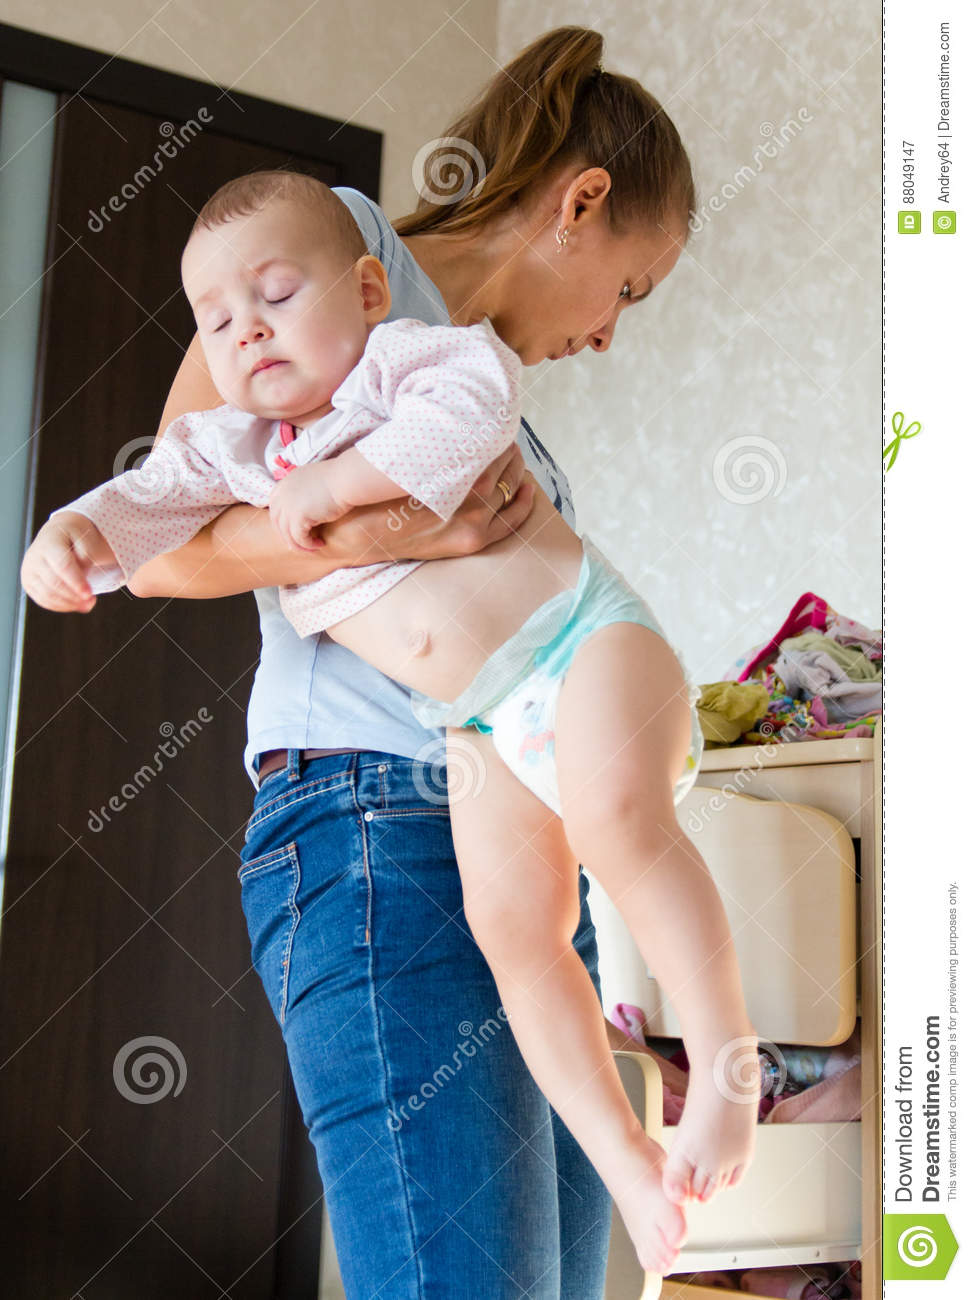 Mom holding baby. Mom cleans baby clothes